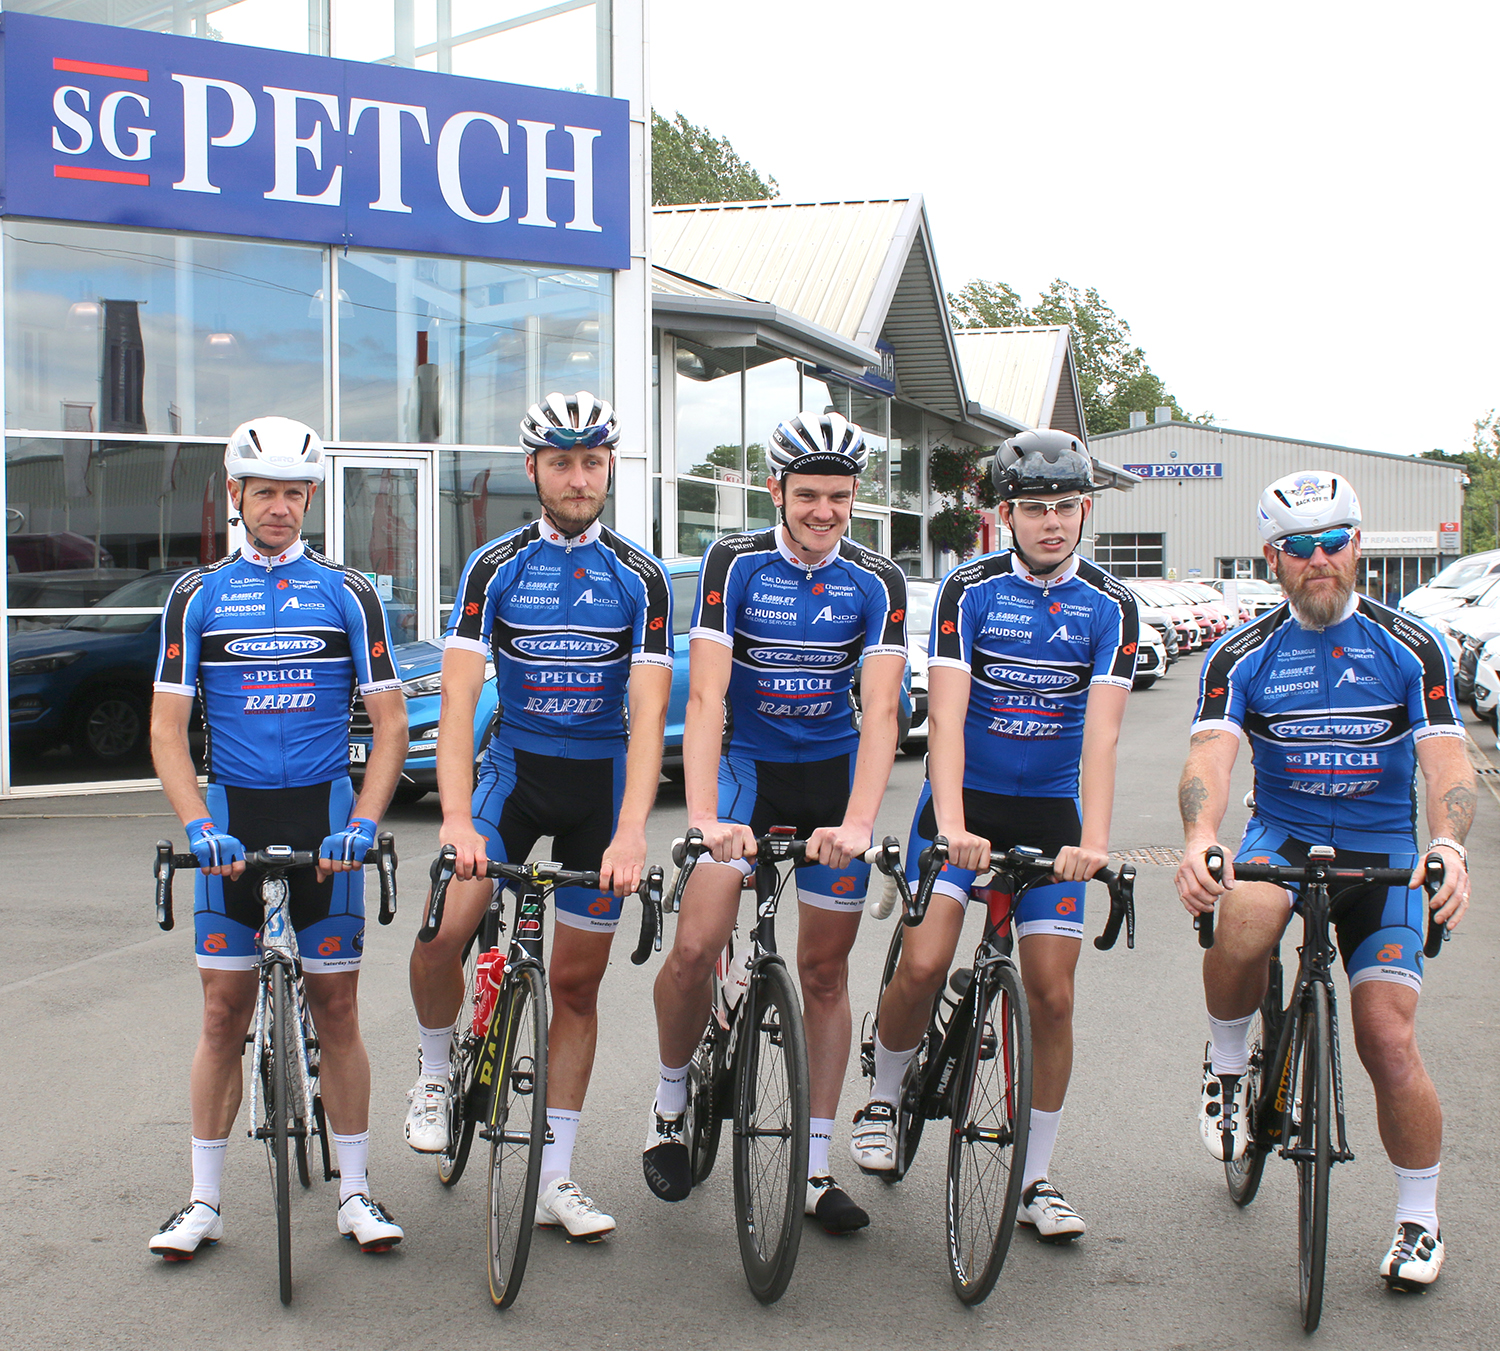 S.G. Petch Sponsor Local Cyclists